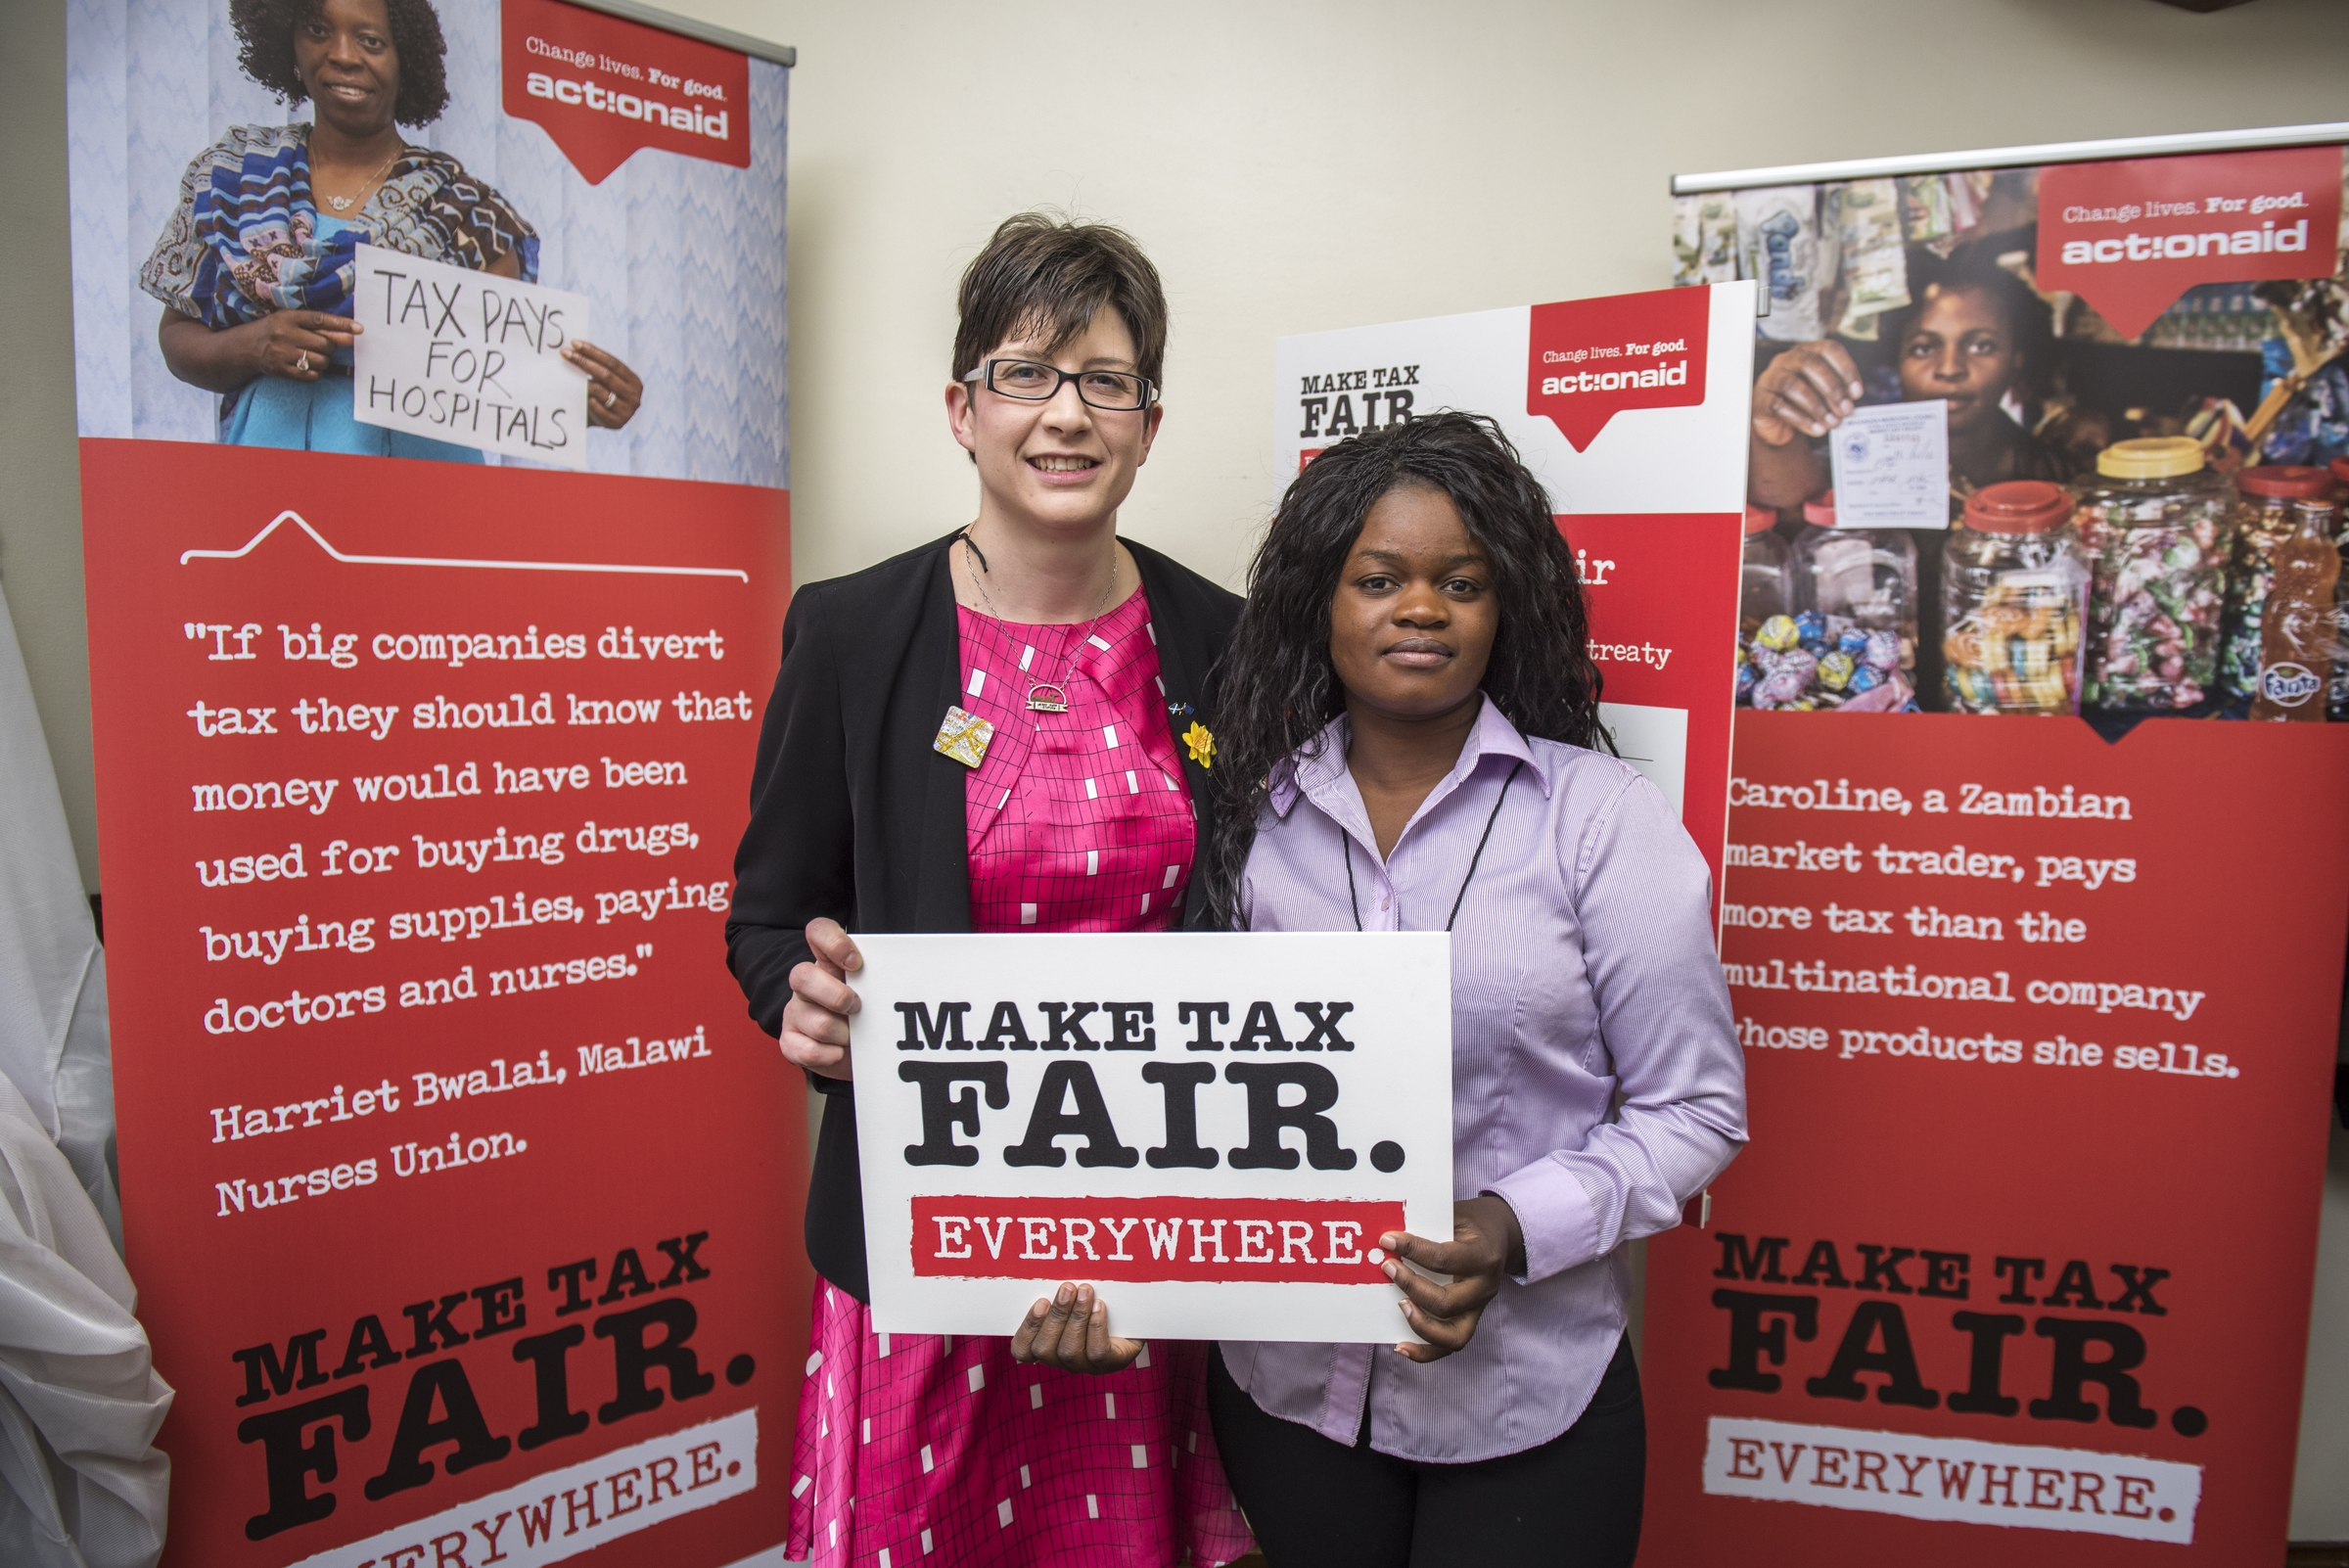 Alison Thewliss MP backs campaign to #MakeTaxFair in Malawi